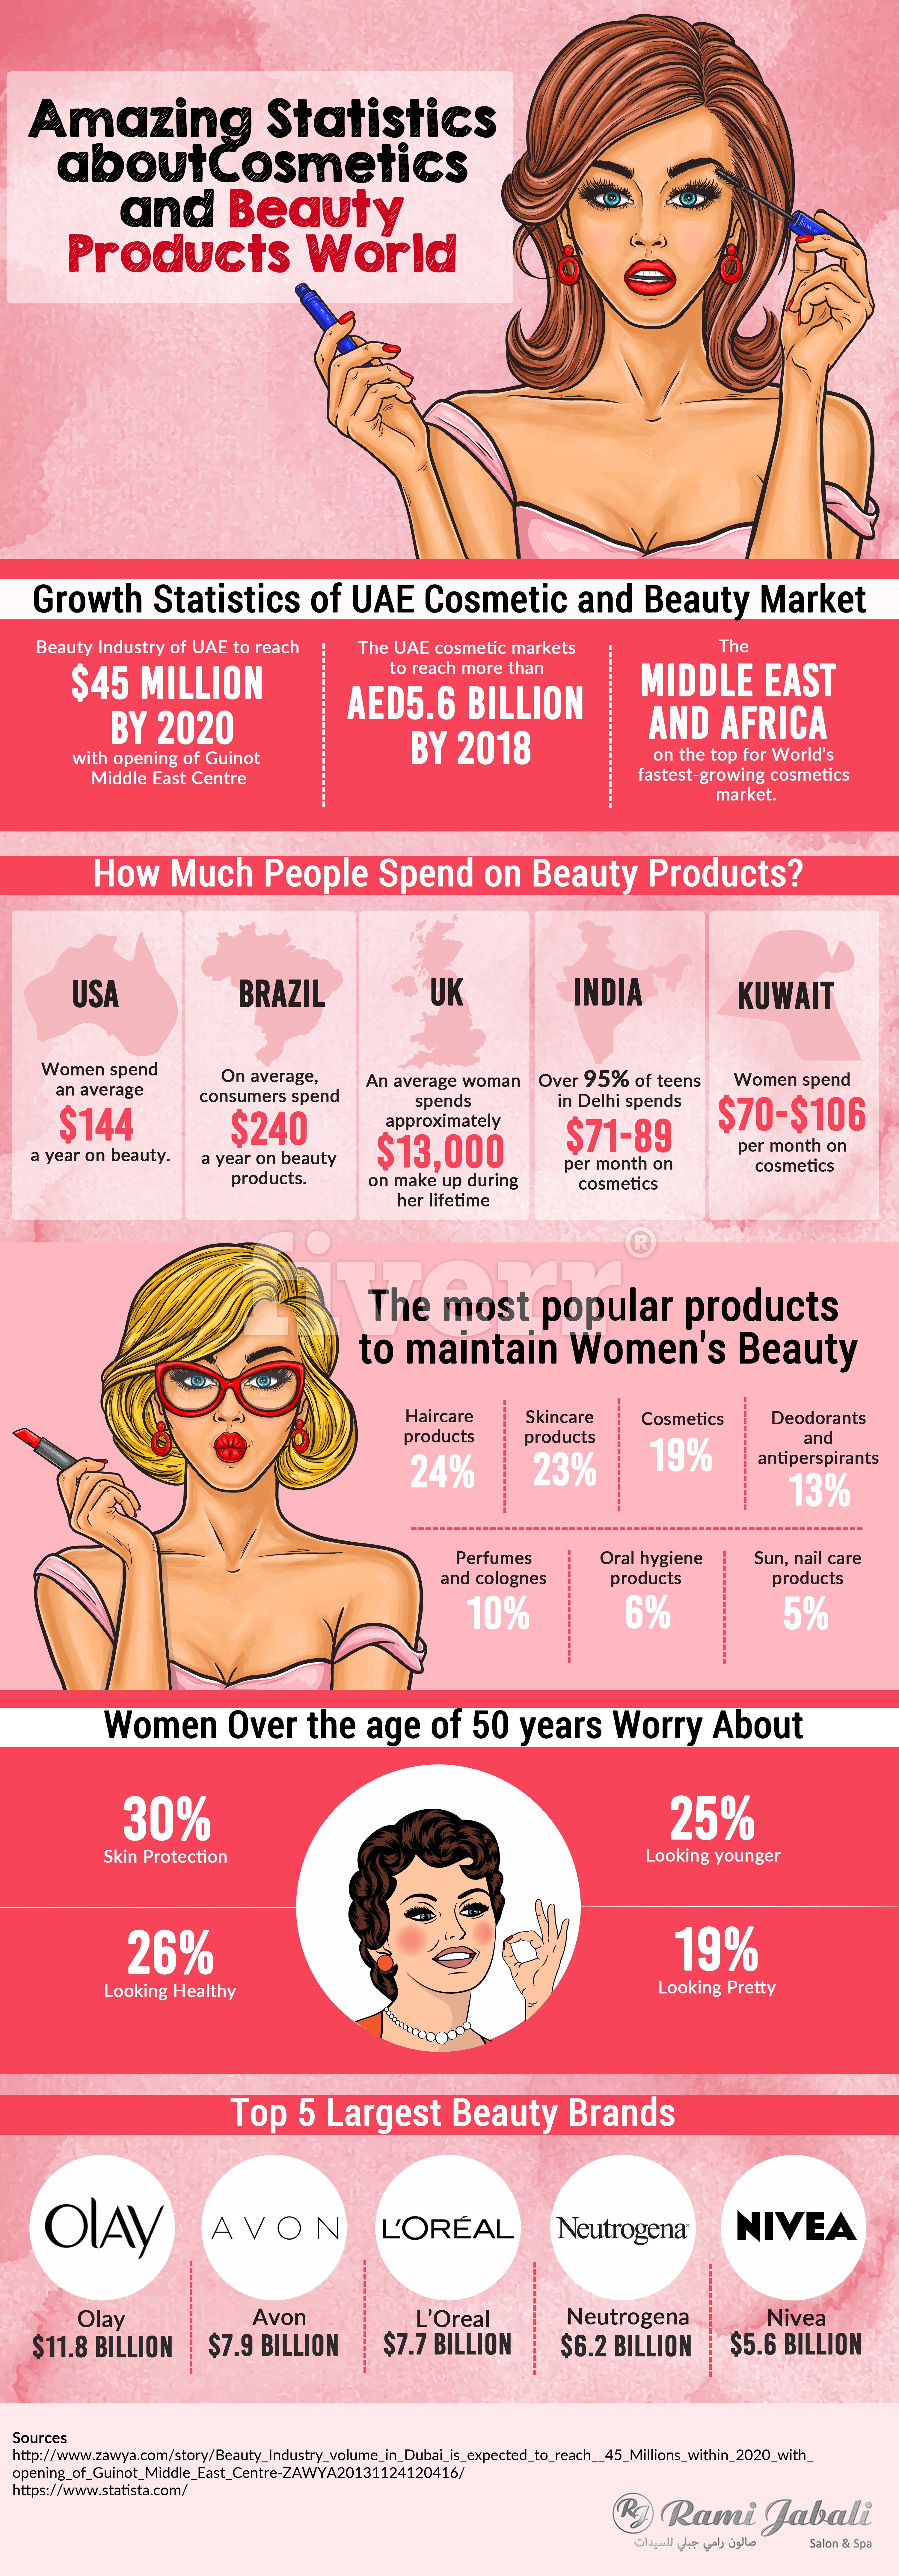 Amazing Statistics About Cosmetics and Beauty Products